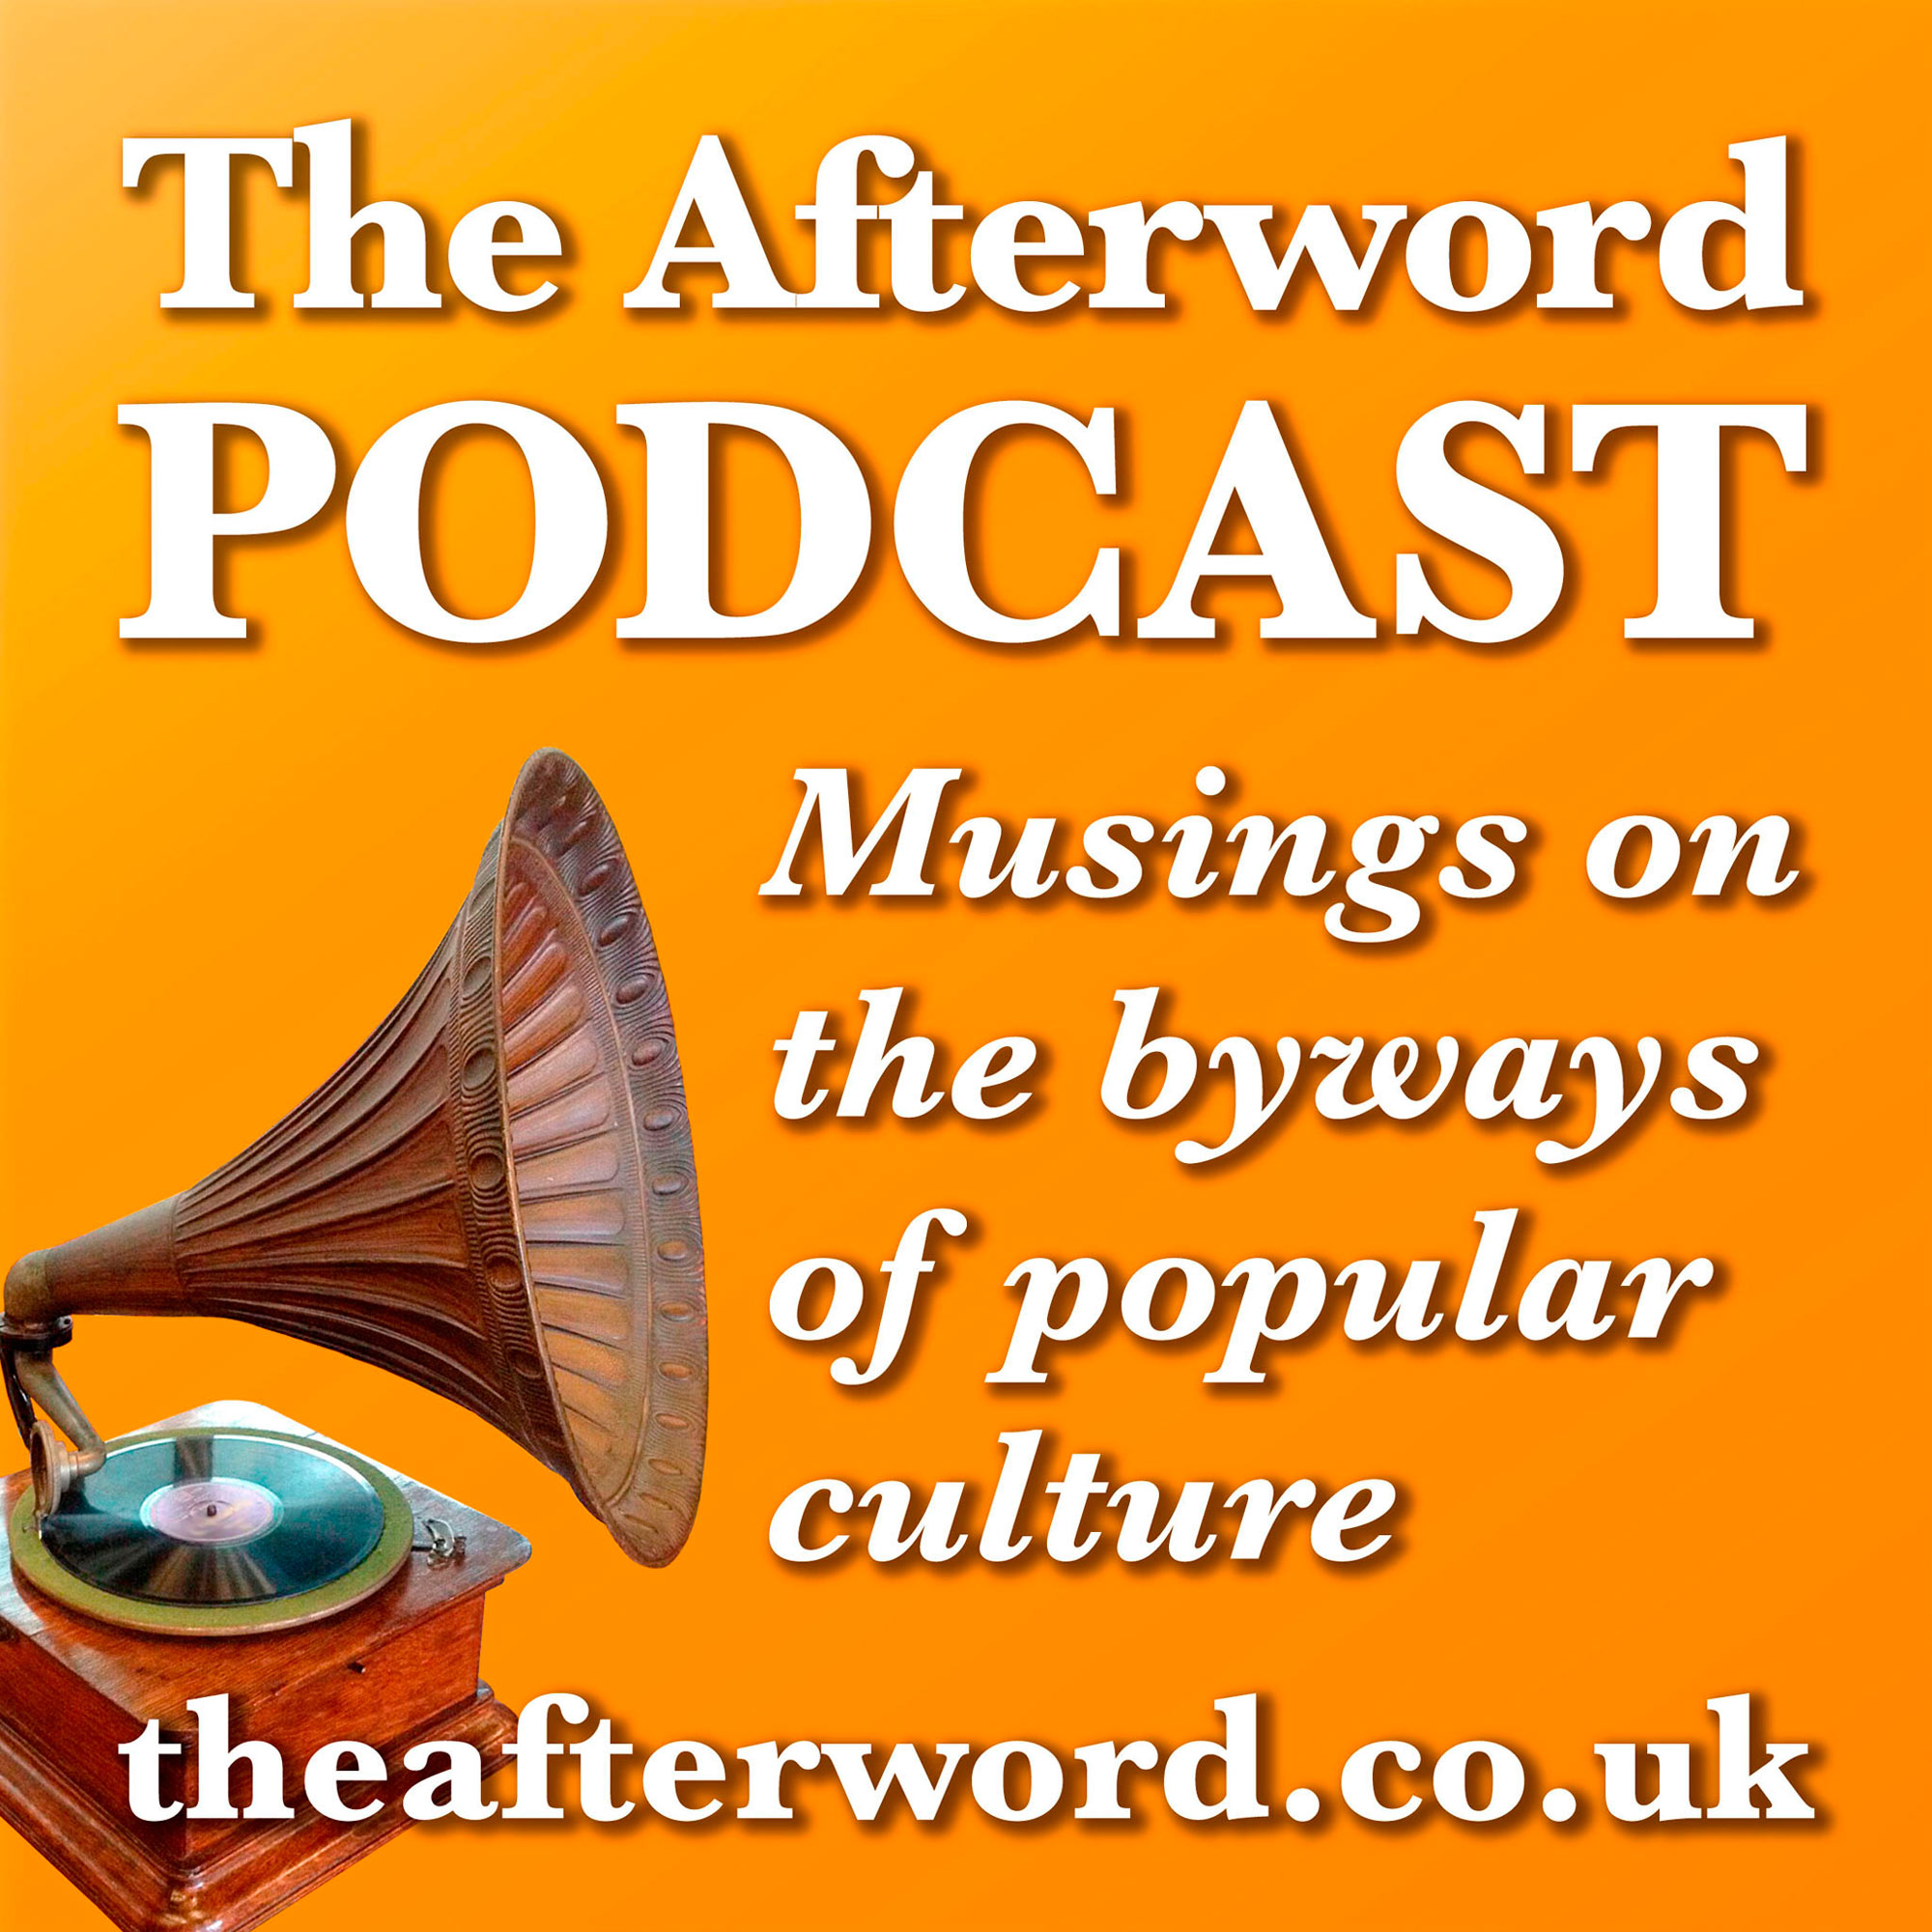 The Afterword Podcast